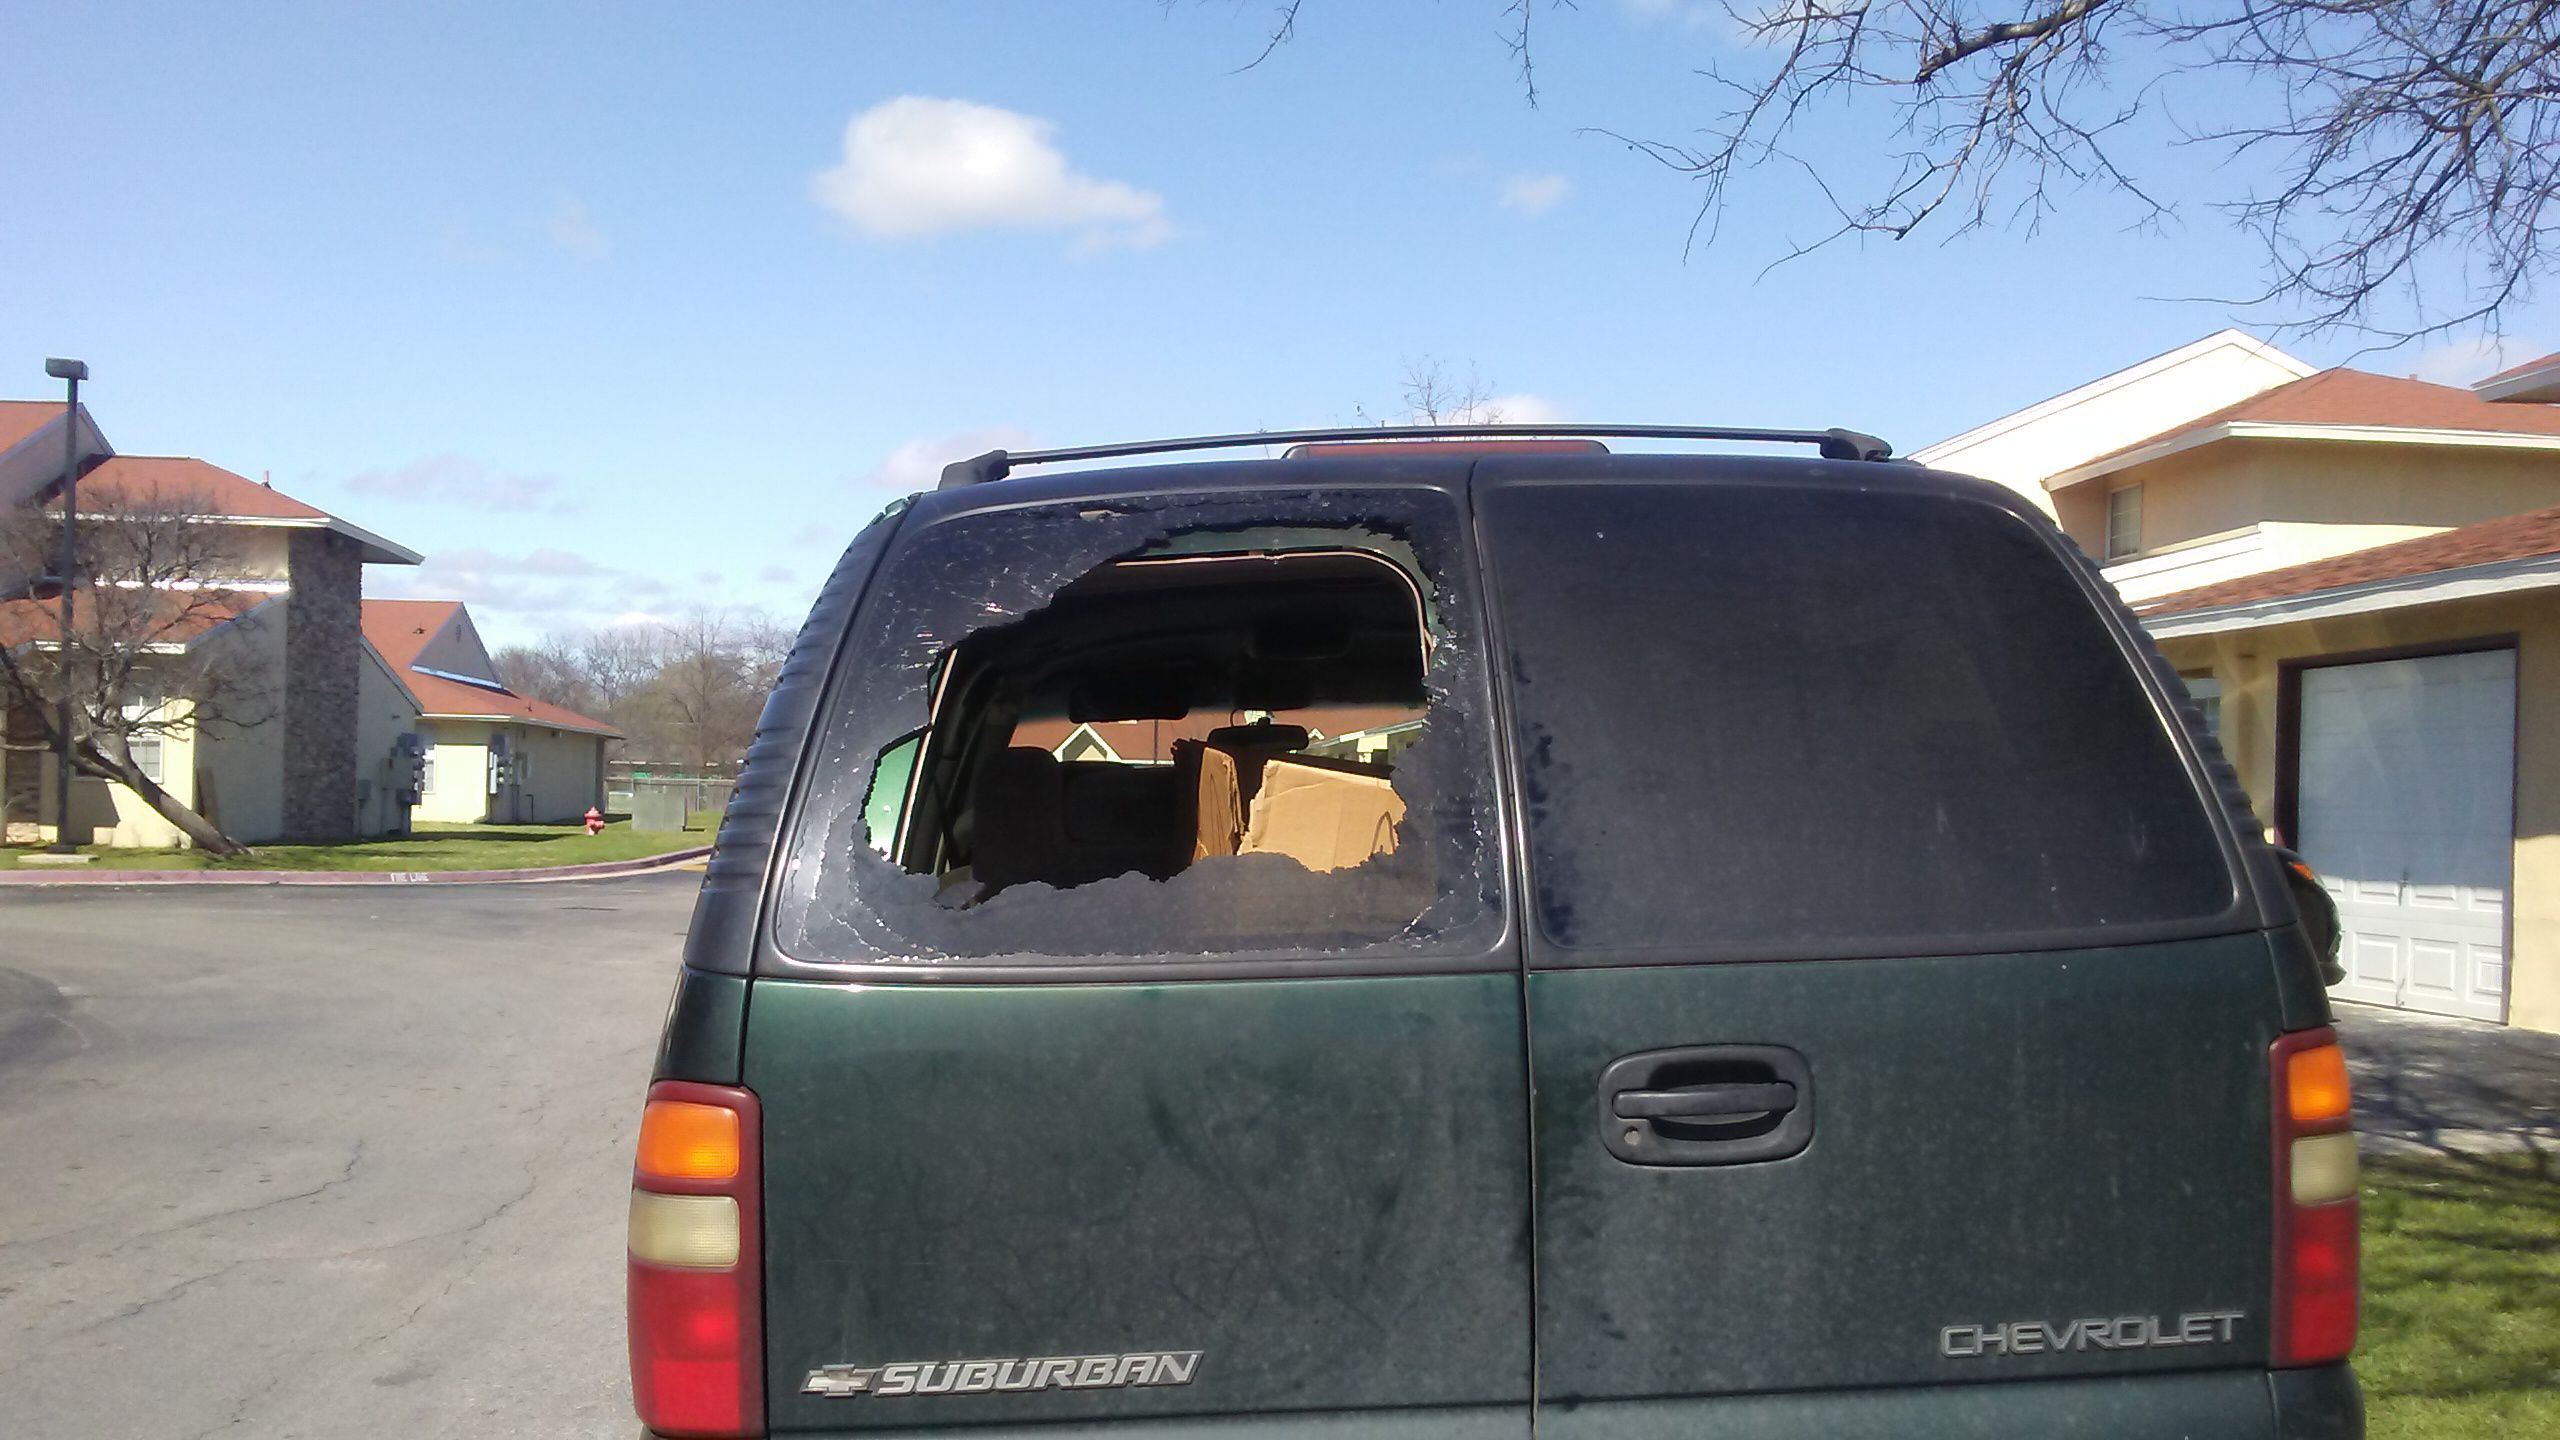 Chevrolet Windshield Replacement Prices Local Auto Glass Quotes 1983 Chevy Silverado Crew Cab Extended 2001 Suburban 4 Door Back Heated Lift Gate